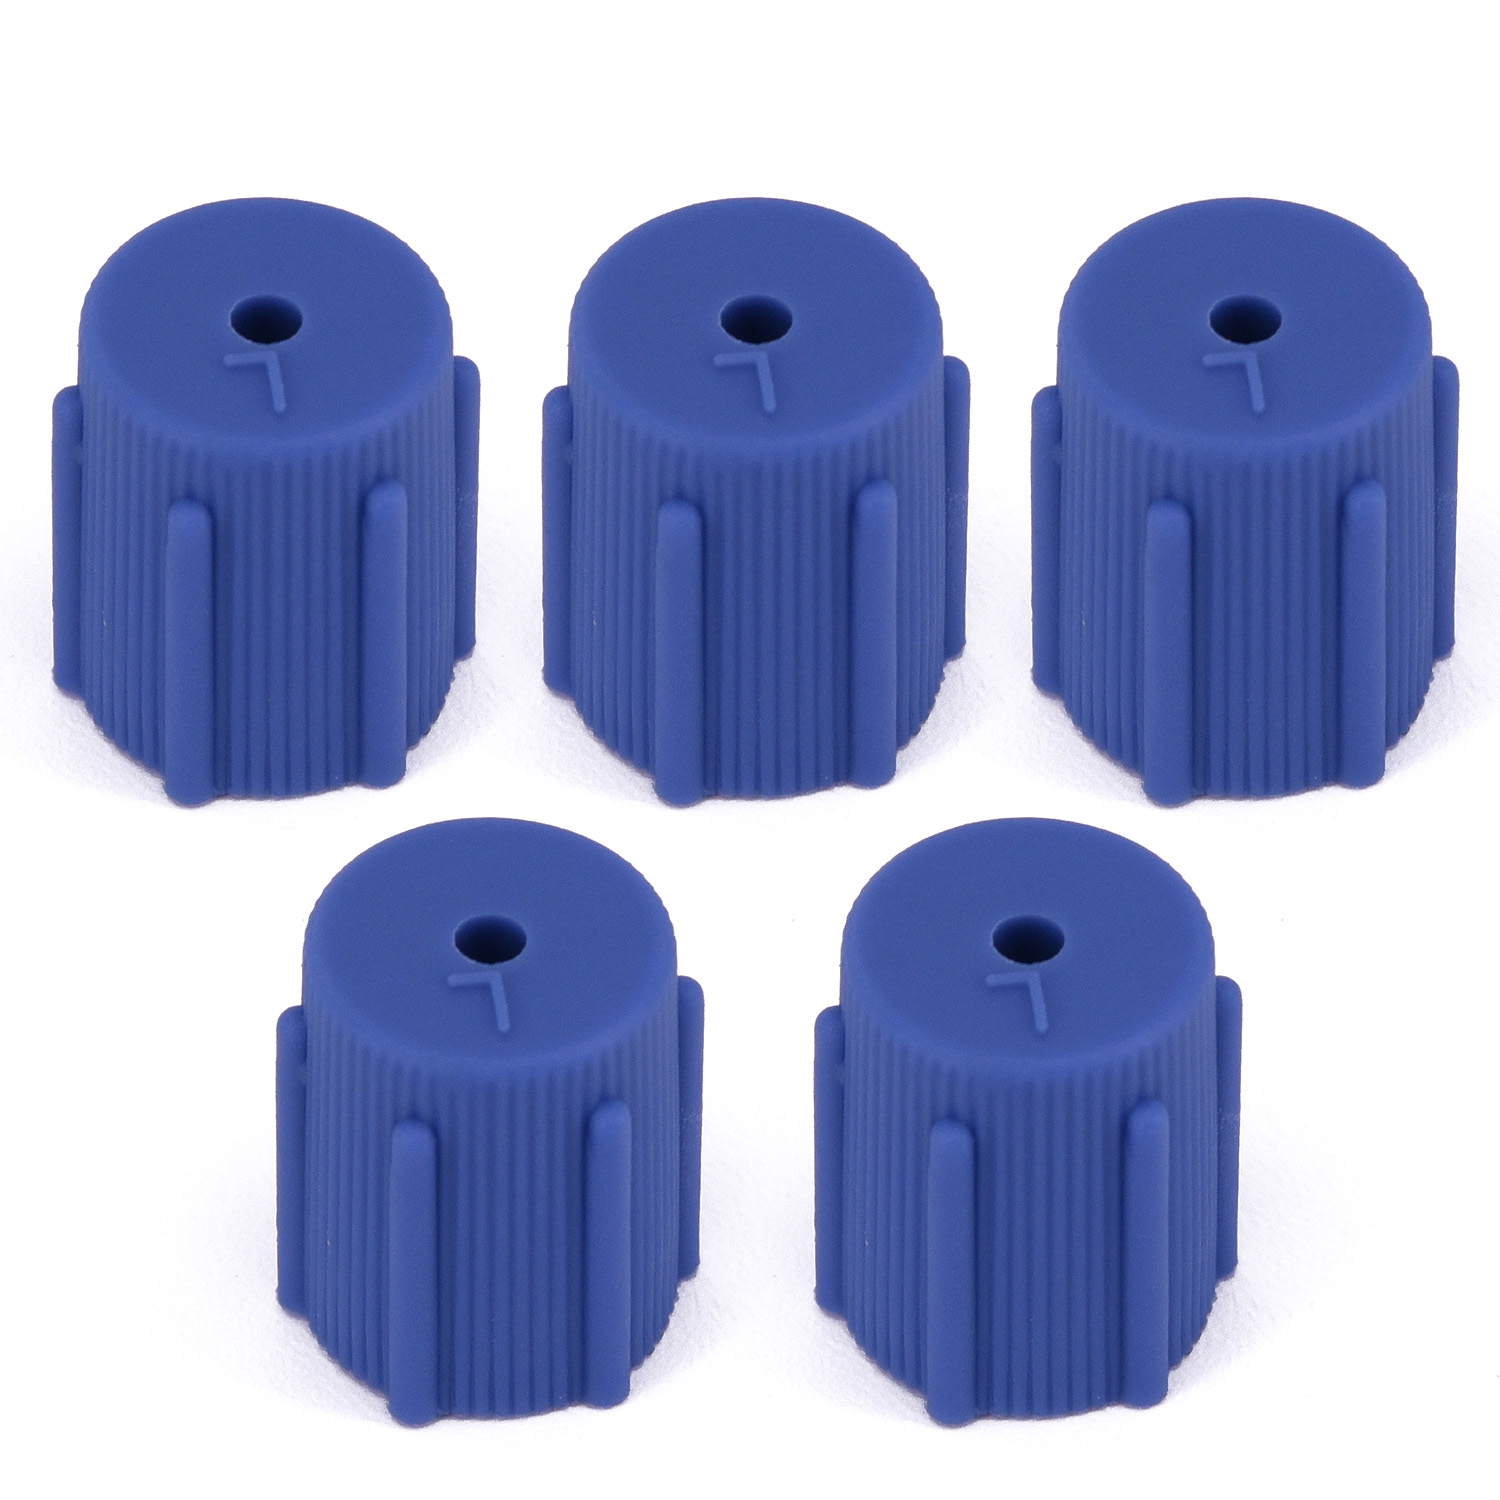 10x Replaces R134a 13/&16mm AC System Cap Charging Port Service Cover Hi Low Side